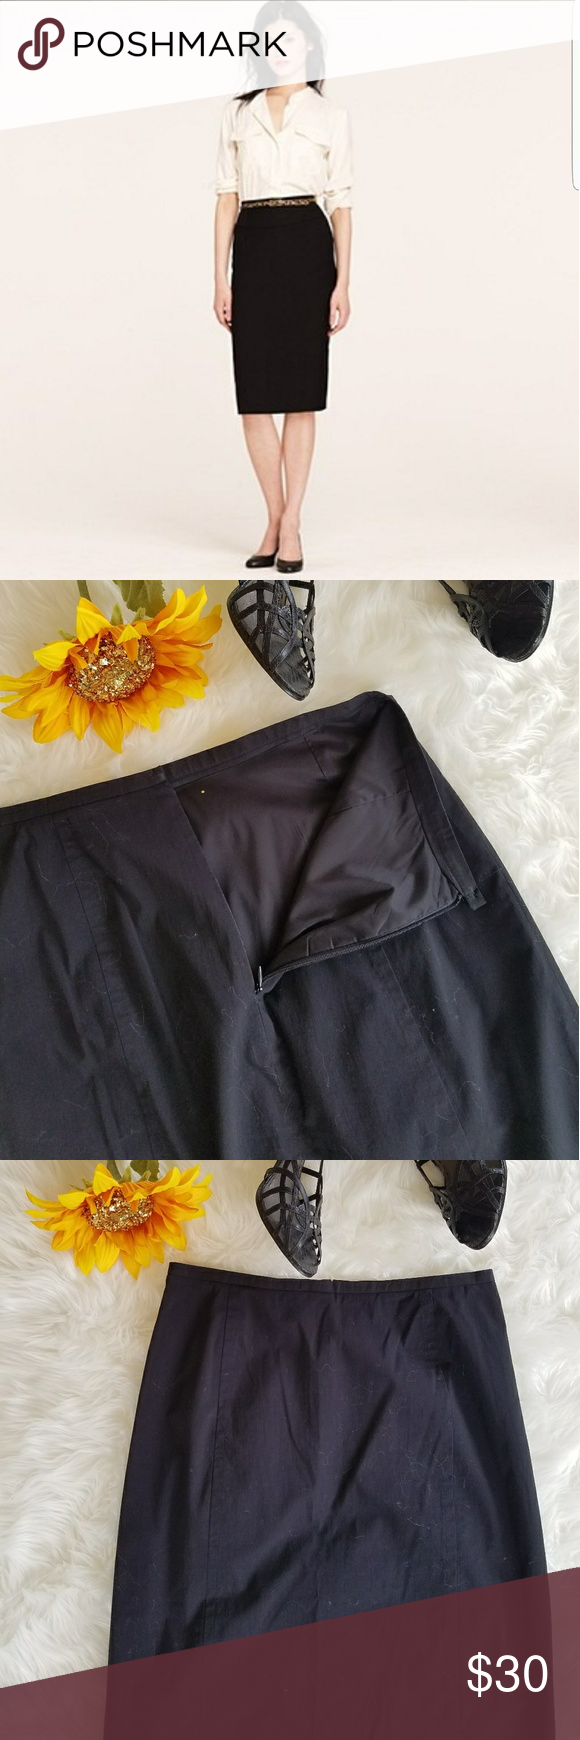 "J Crew Black Pencil Skirt Beautiful J Crew Black Pencil Skirt  Fully lined  Back zipper, back slit  14"" Waist 26.5"" Length(Waist to Hem) 60% Cotton, 38% Nylon, 2% Lycra Spandex  Lining: 95% Polyester, 5% Spandex  Dry Clean Only J. Crew Skirts Pencil"